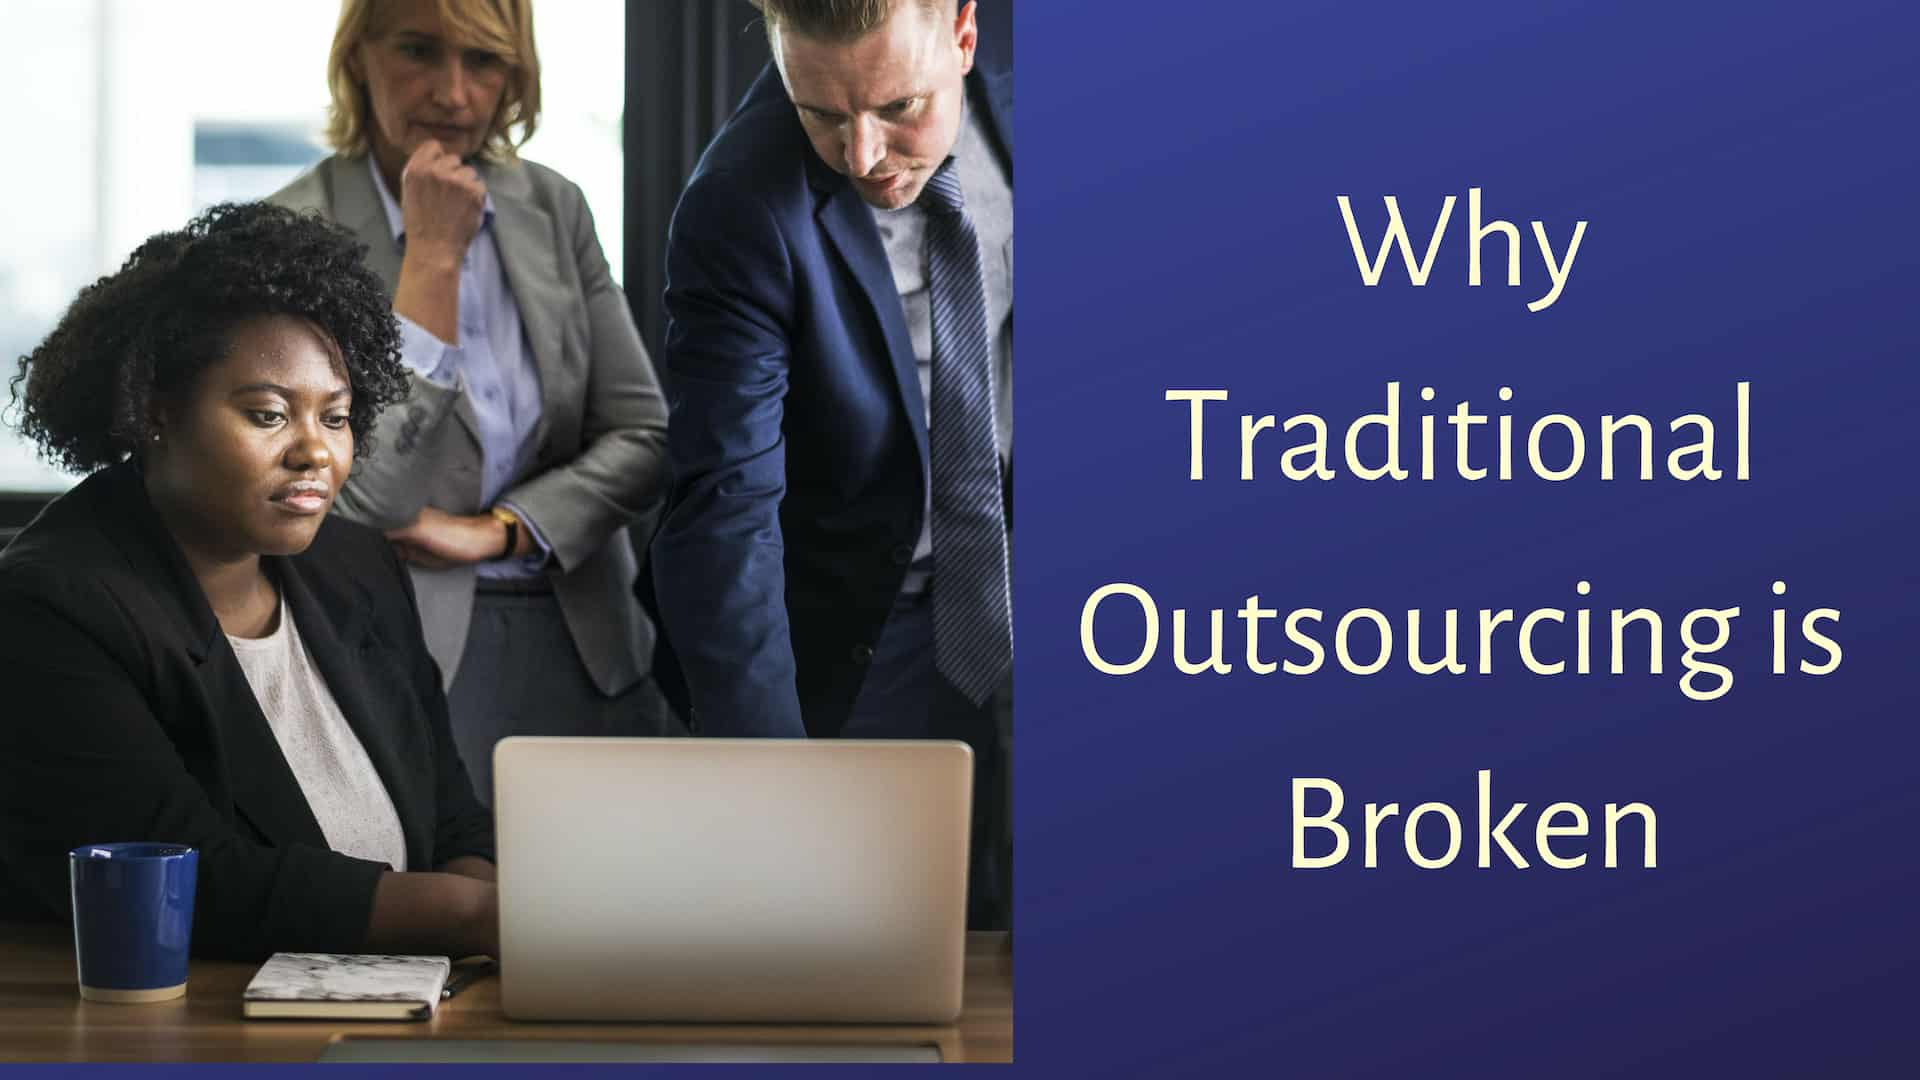 Why Traditional Outsourcing Is Broken